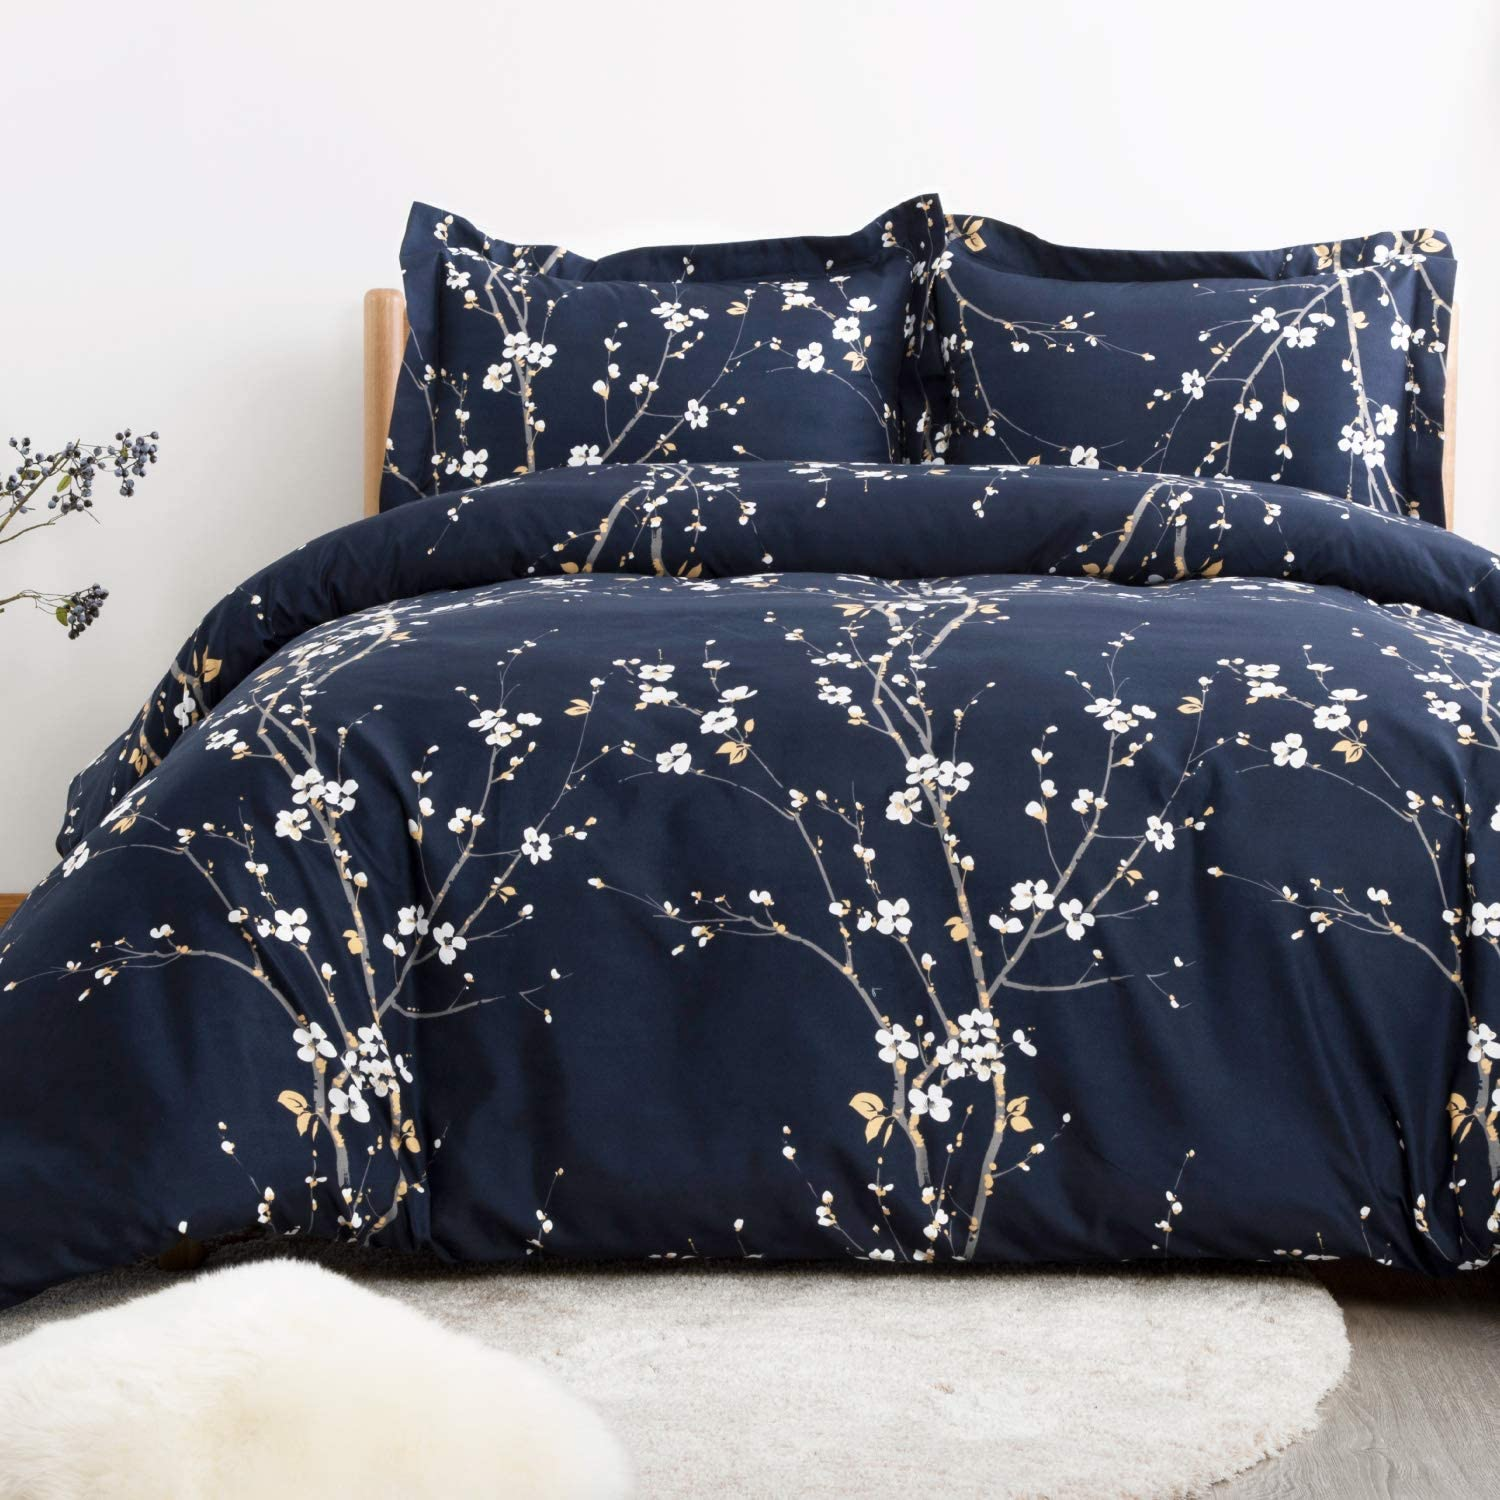 Bedsure Duvet Cover Set Twin Navy Printed Spring Bloom Pattern (68x90 inches) 2 Pieces Comforter Cover Zipper Closure (1 Duvet Cover + 1 Pillow Sham) Ultra Soft Hypoallergenic Microfiber